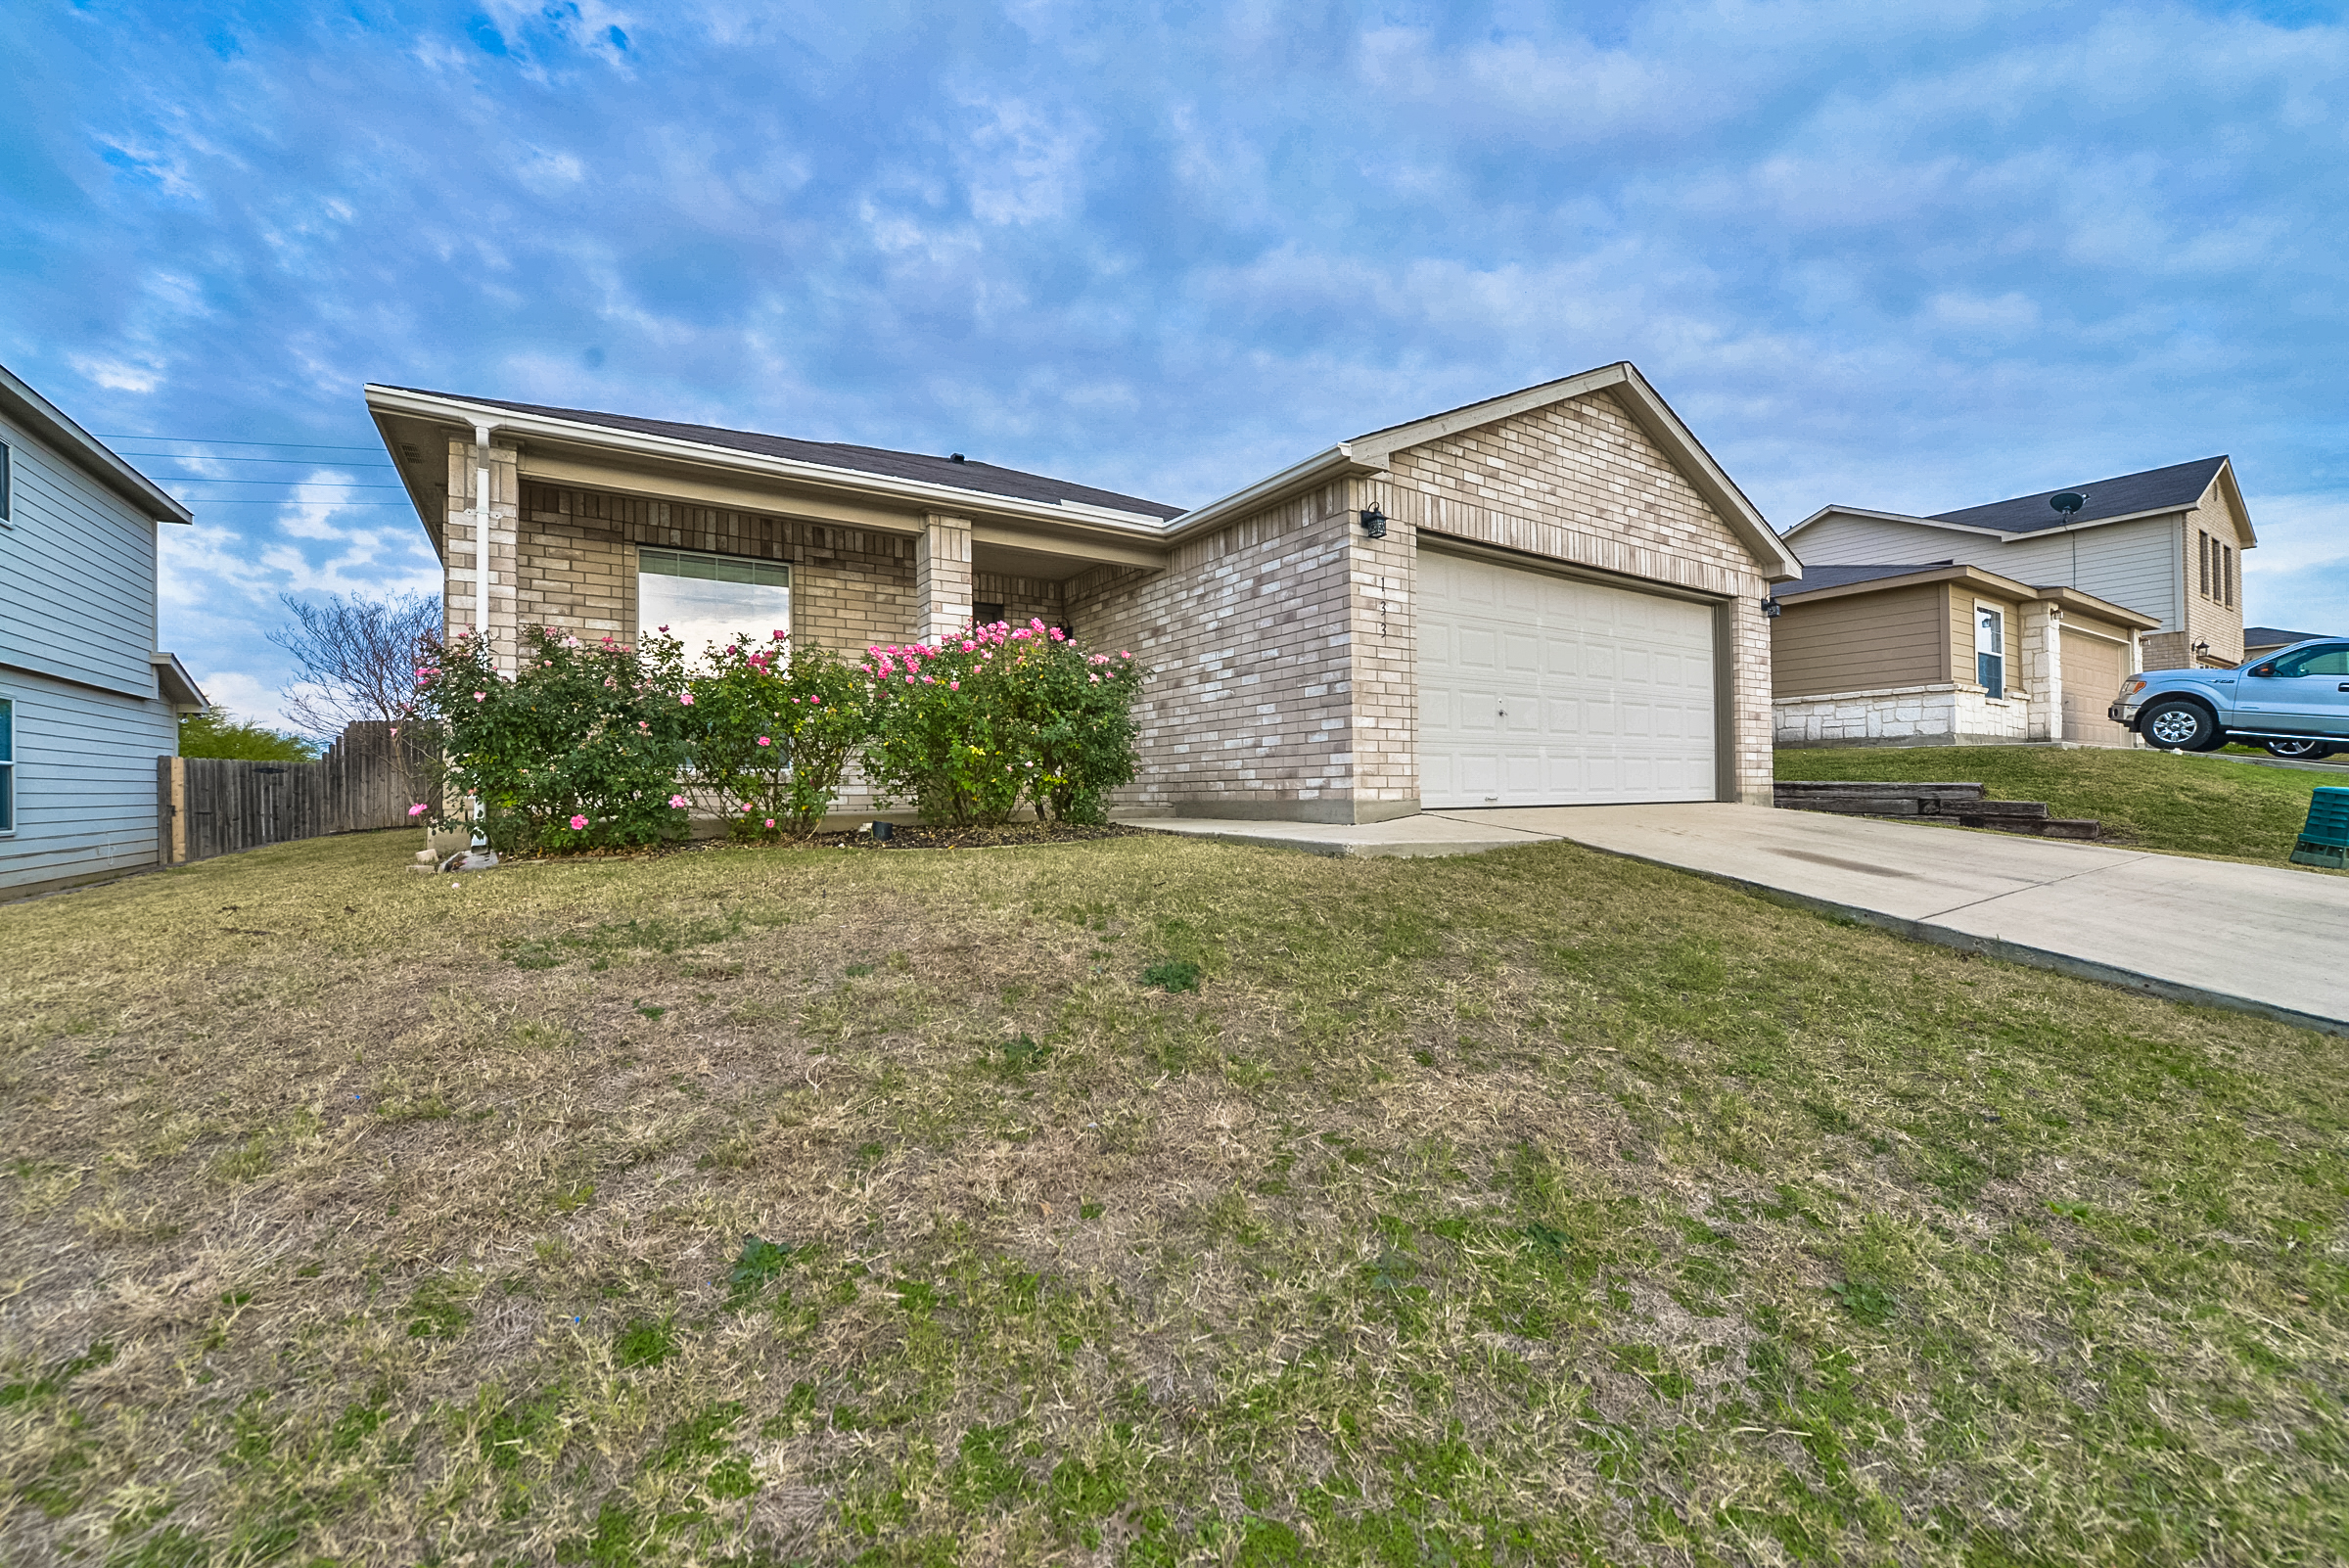 Another Raving Fan: Seller, 133 Blue Willow sold for $152,000!